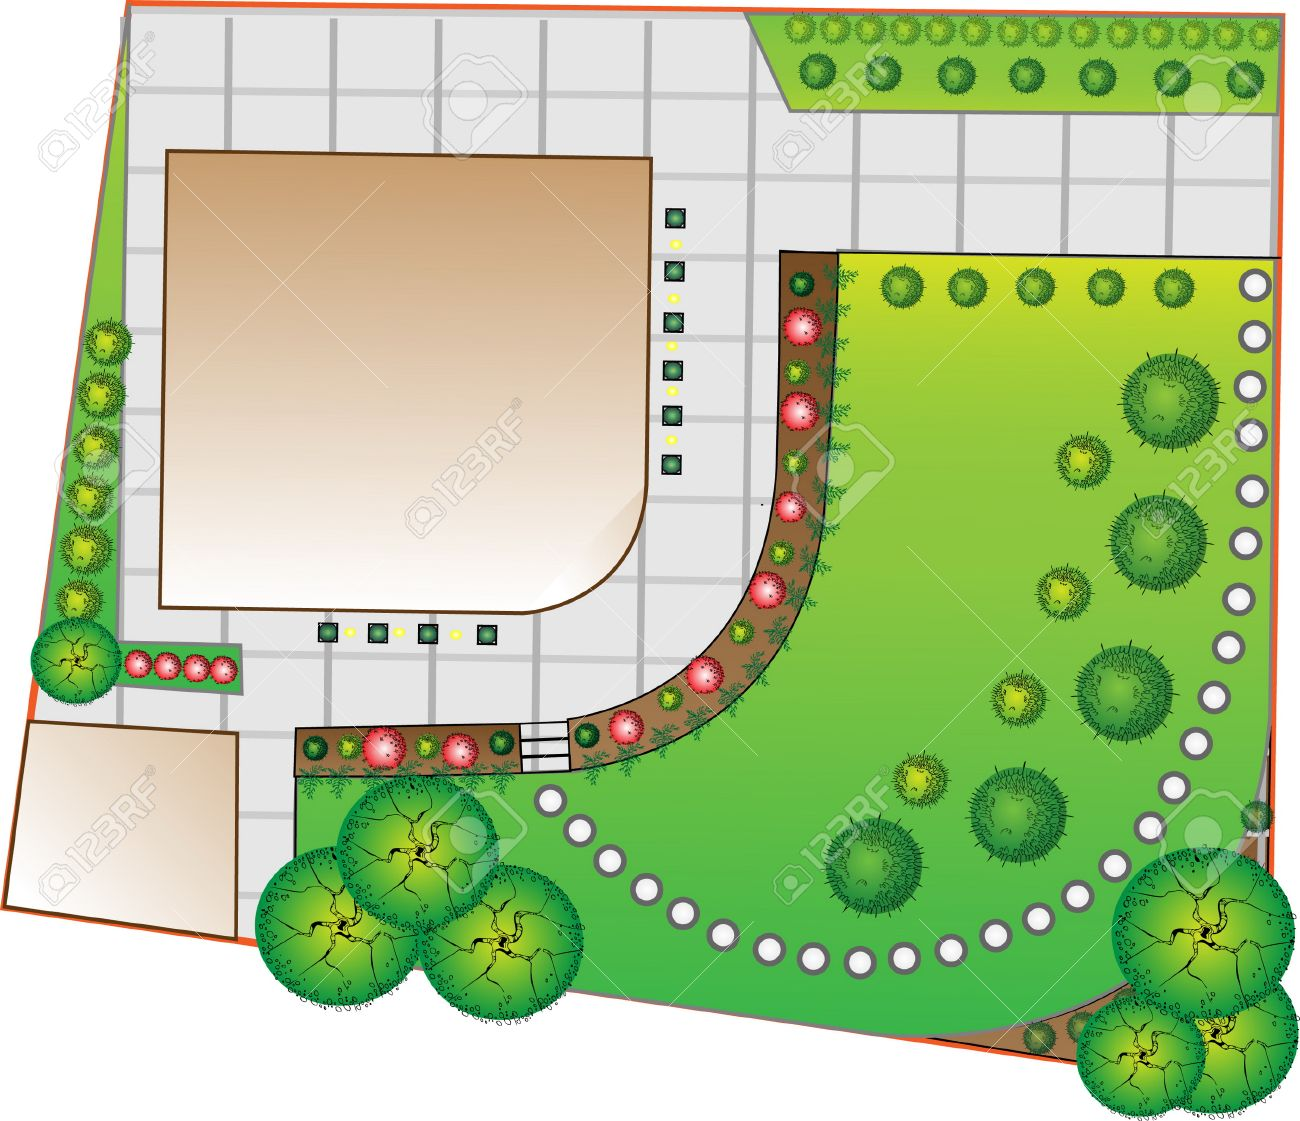 Pleasant Colored Landscape Plan With Lake And Bridge Royalty Free Cliparts Largest Home Design Picture Inspirations Pitcheantrous